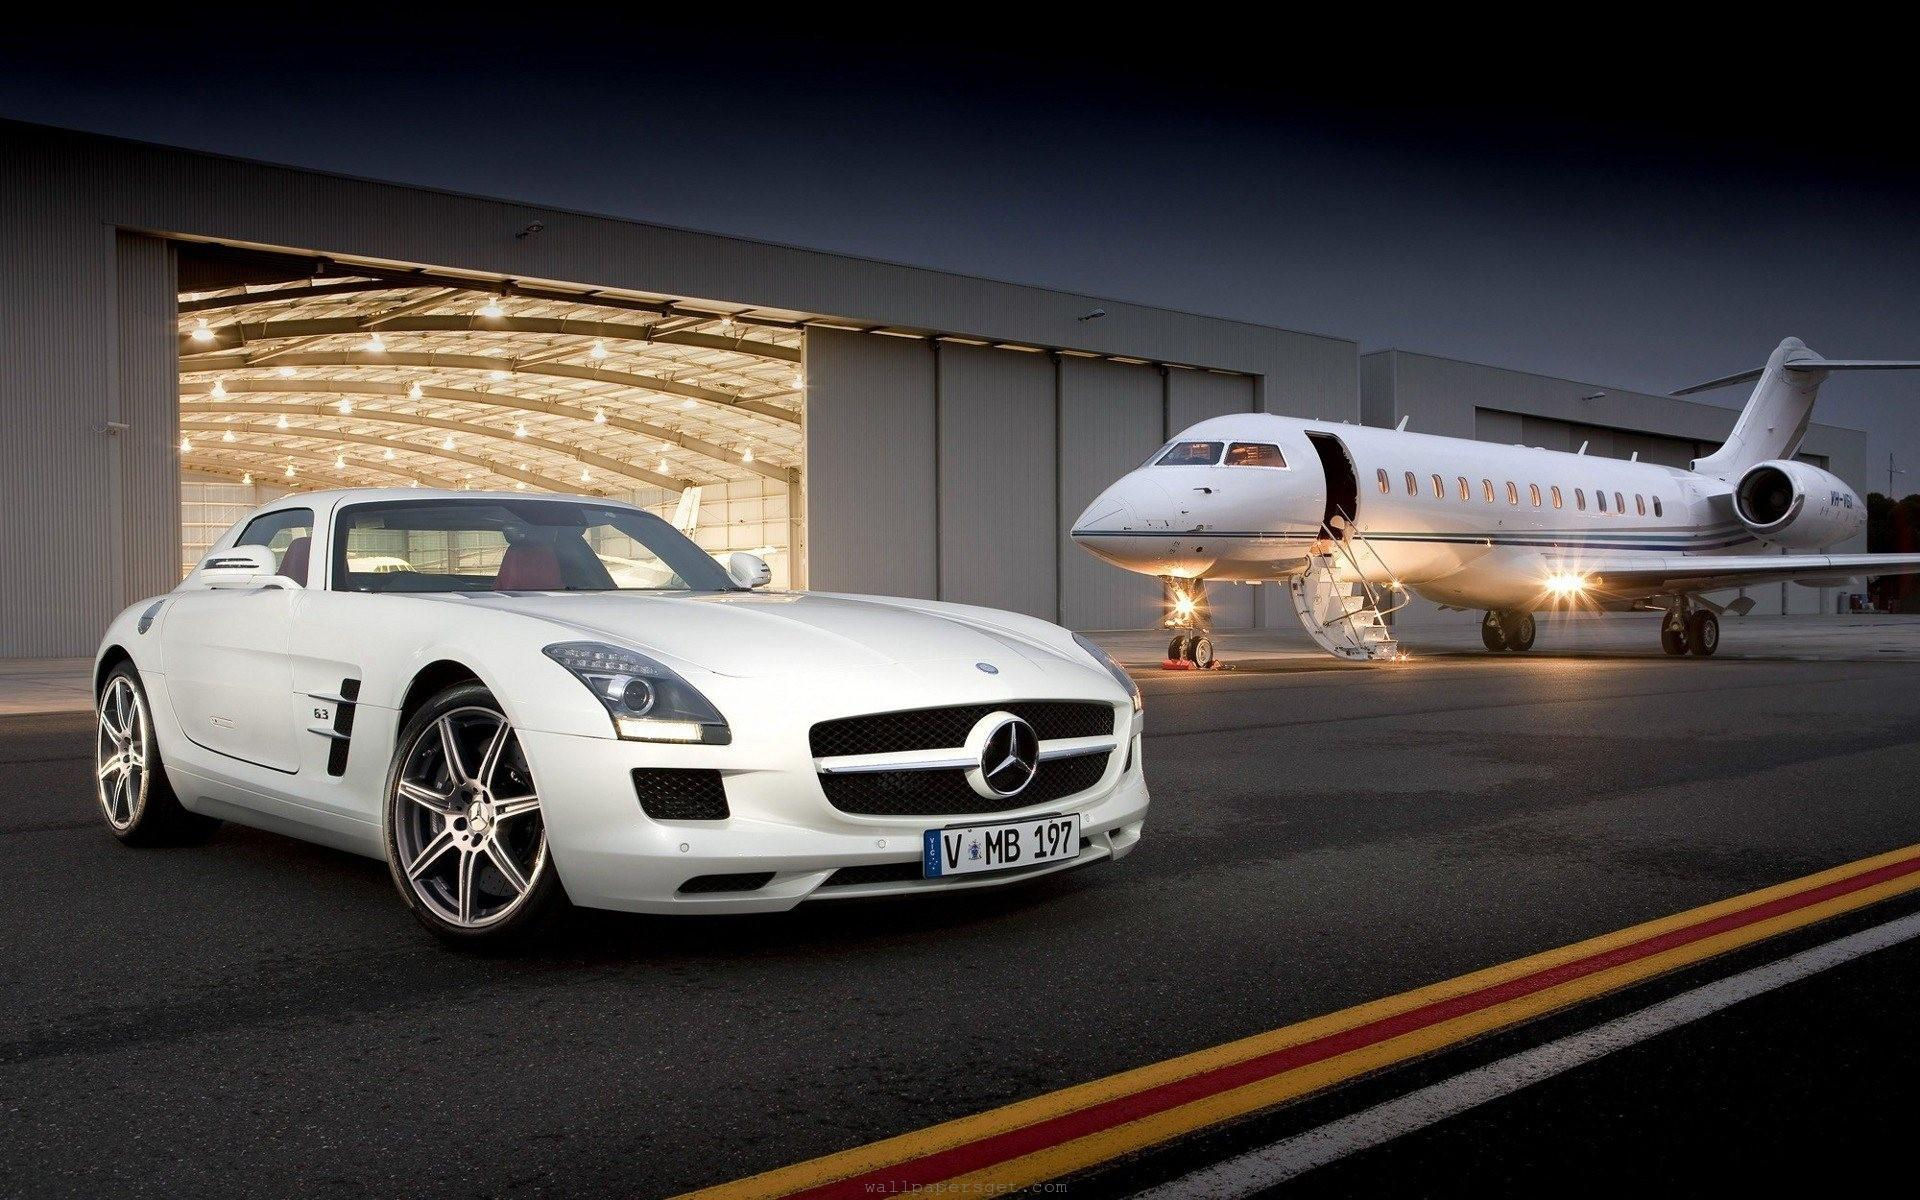 rentals-limousine-service-amp-private-jets.jpg